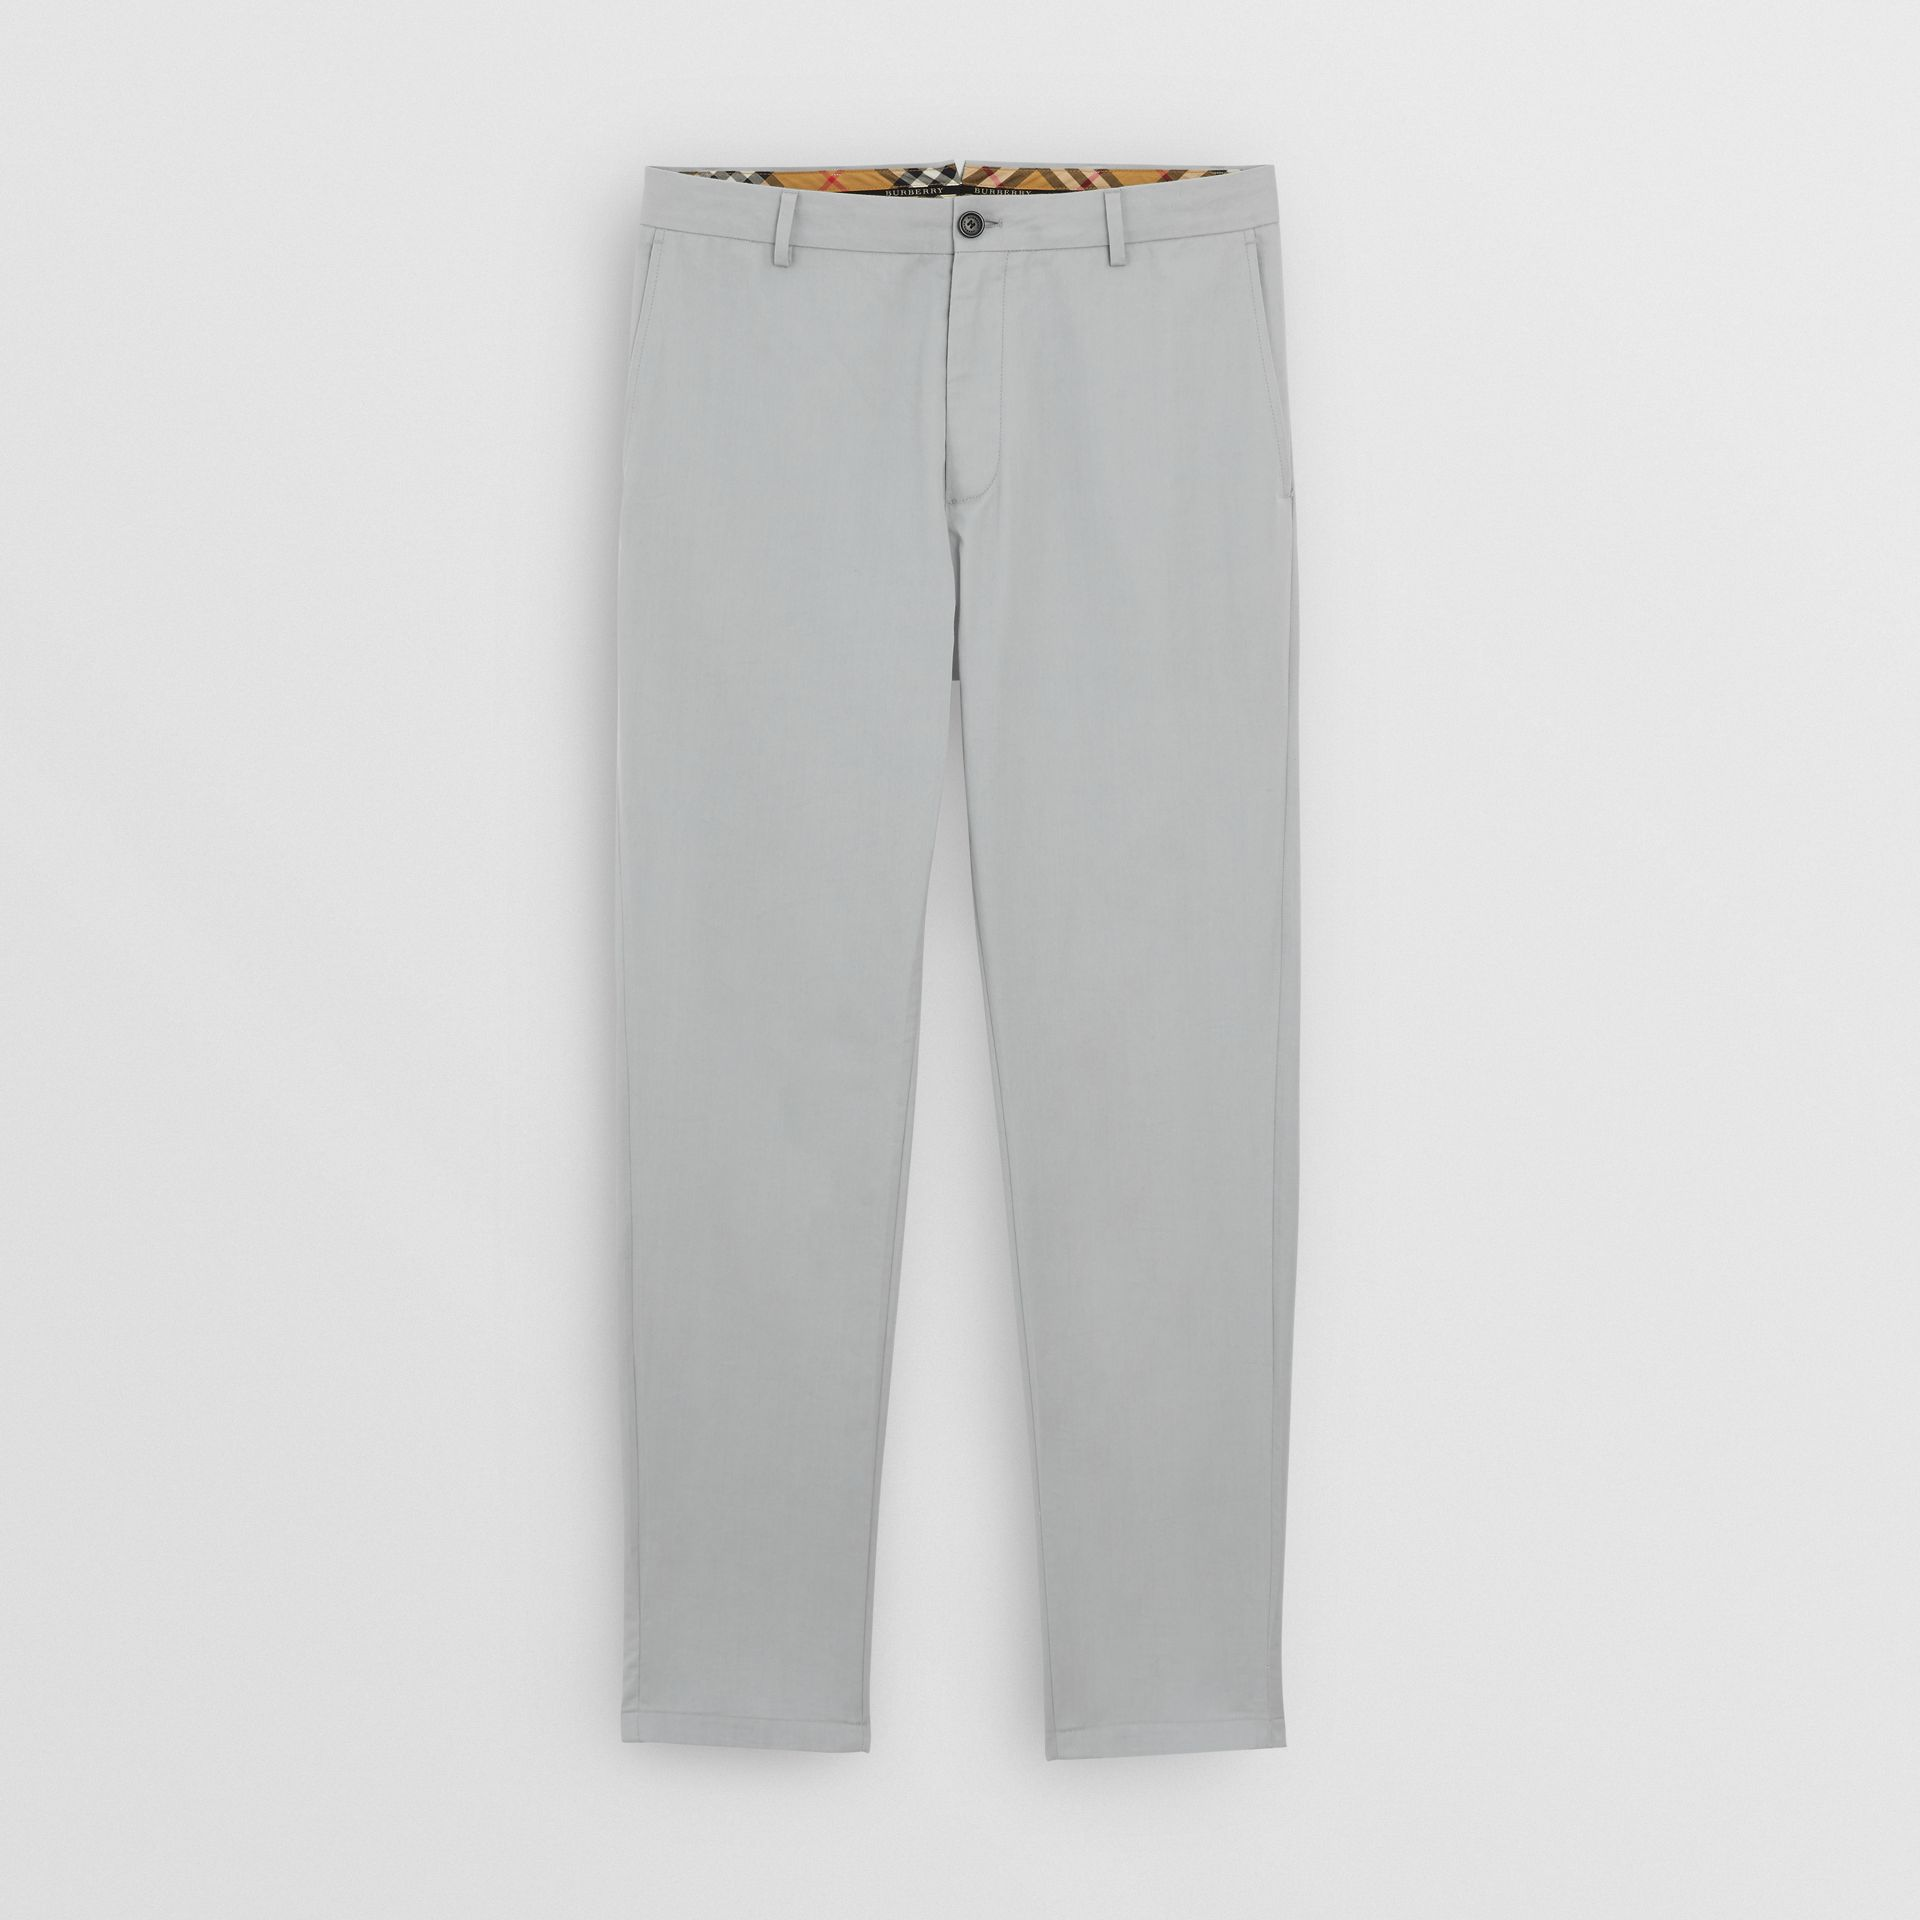 Slim Fit Cotton Chinos in Blue Grey - Men | Burberry - gallery image 3